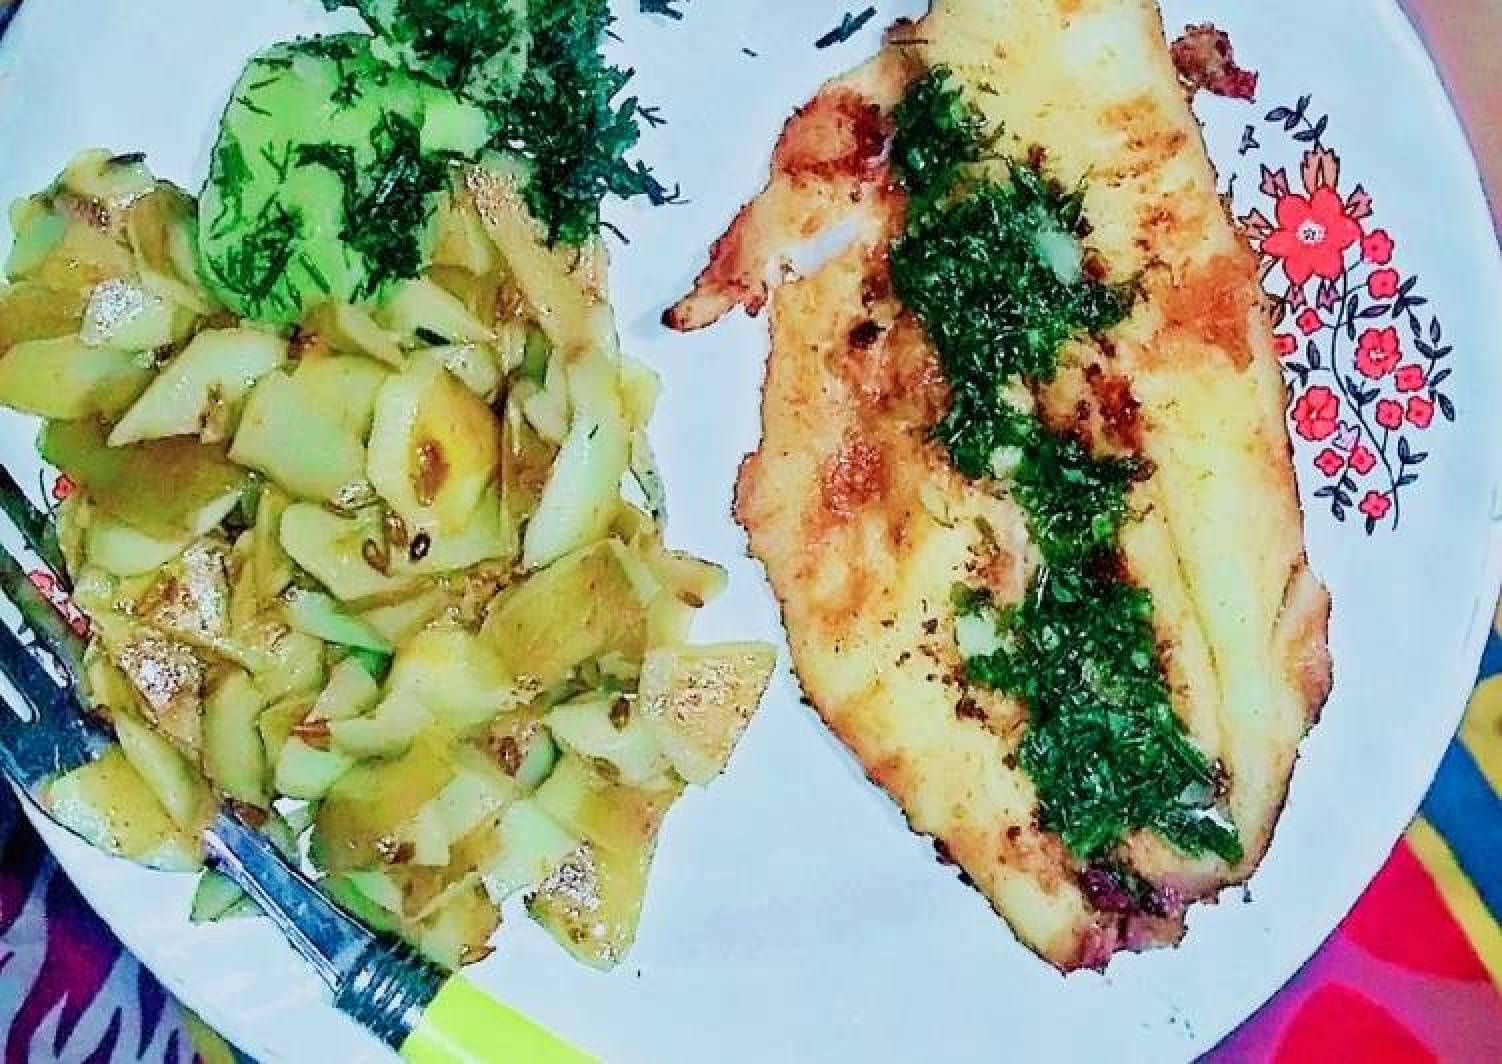 Italian Grill Fish with Skin Potatoes Salad and thyme dill Sauce